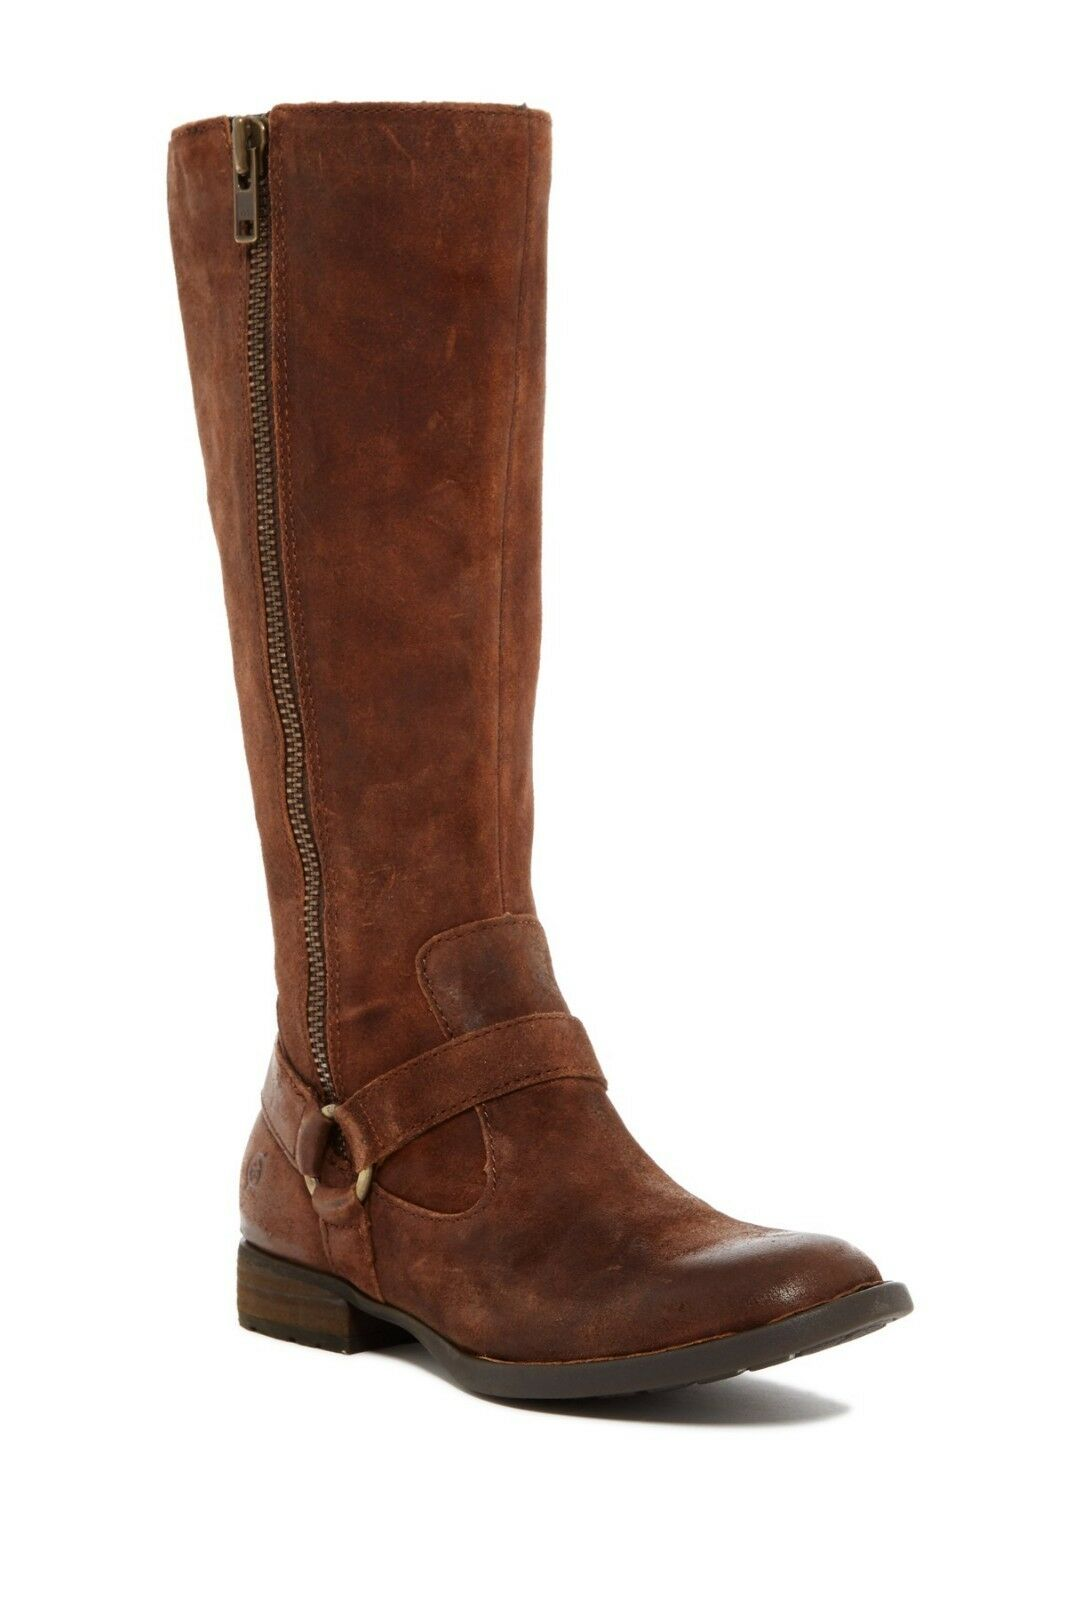 NEW Born Delall Suede Riding Boot, Tobacco Brown Suede, Women Size 6.5, 245